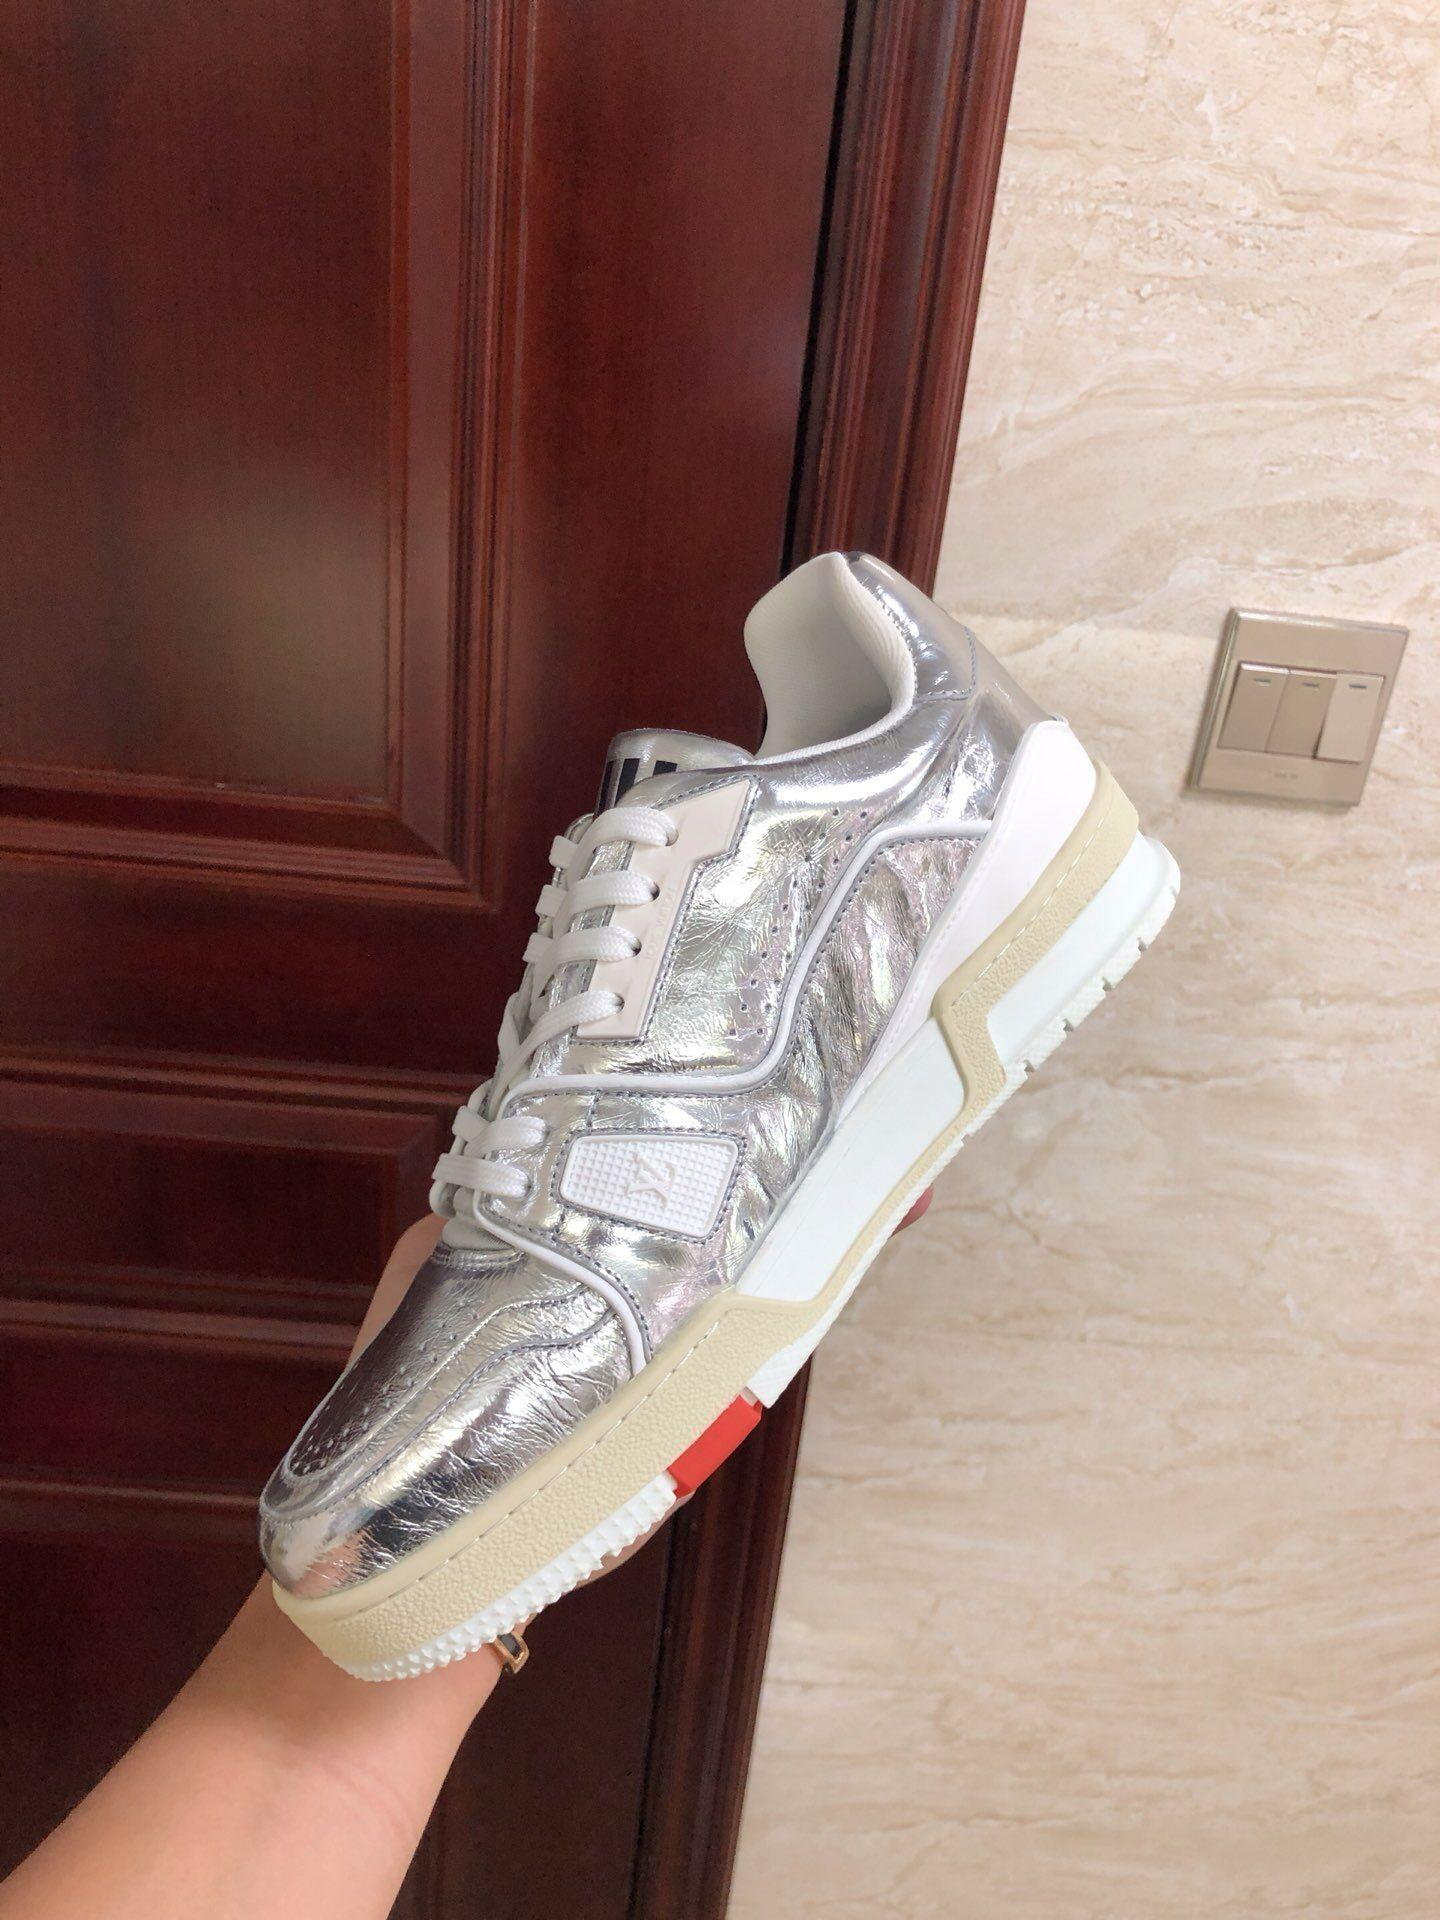 lv trainer sneaker Metallic leather silver lv men sneaker lv sneaker  4